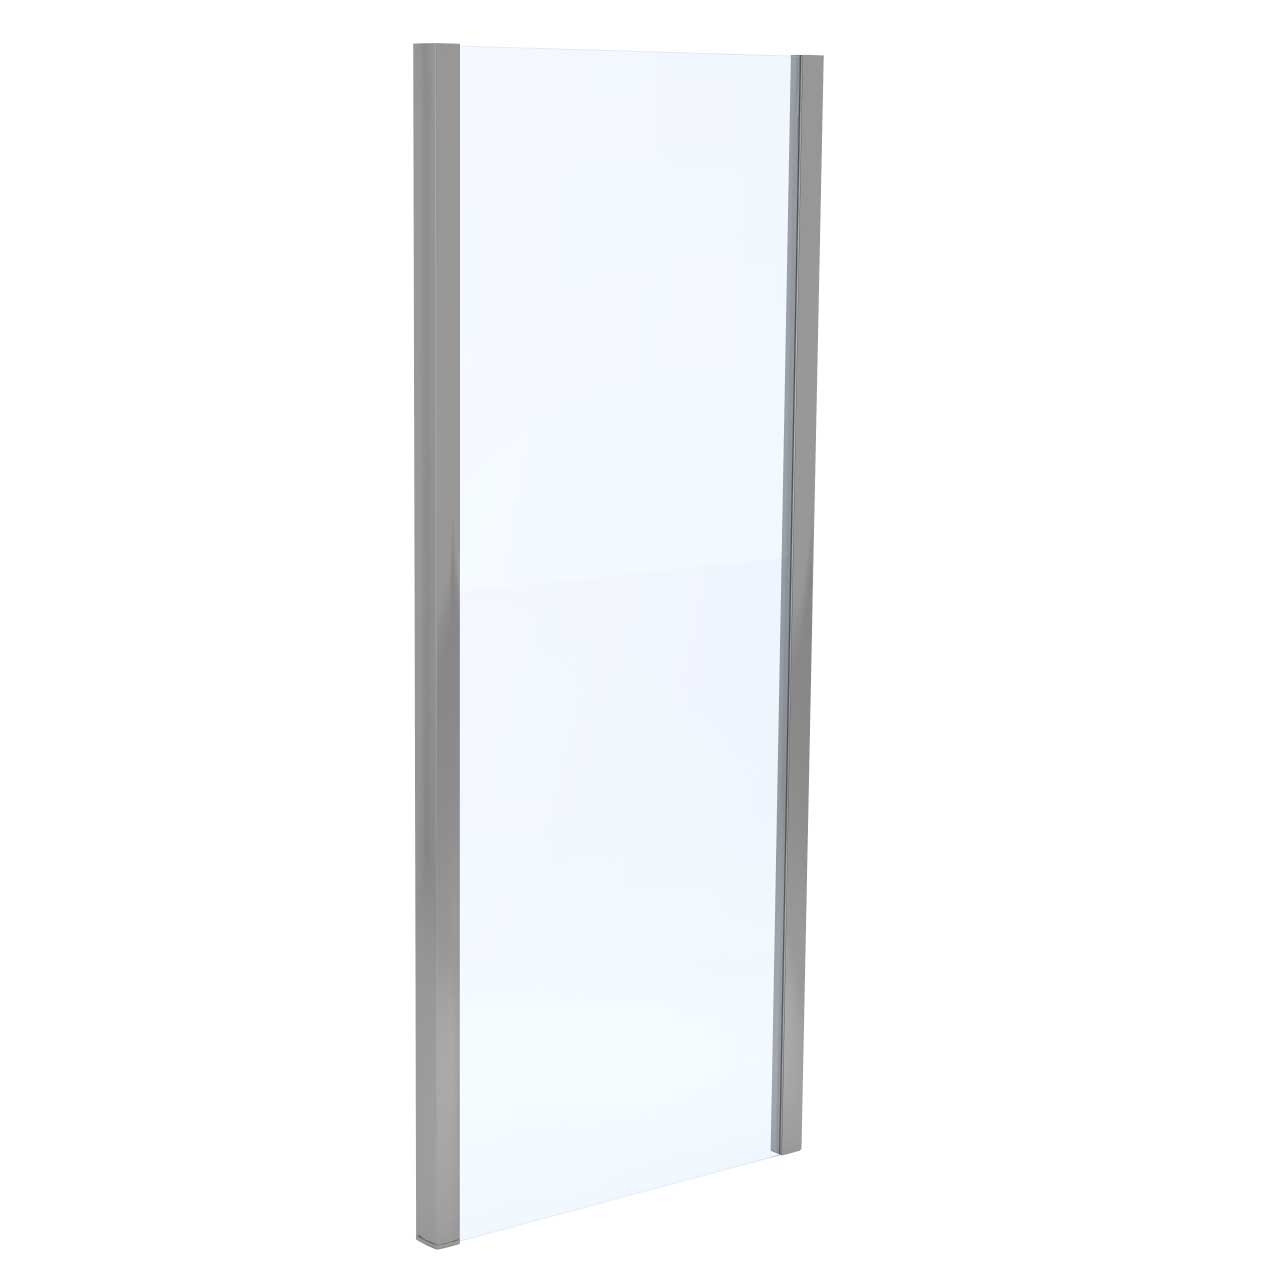 Series 6 1400mm x 760mm Double Sliding Door Shower Enclosure